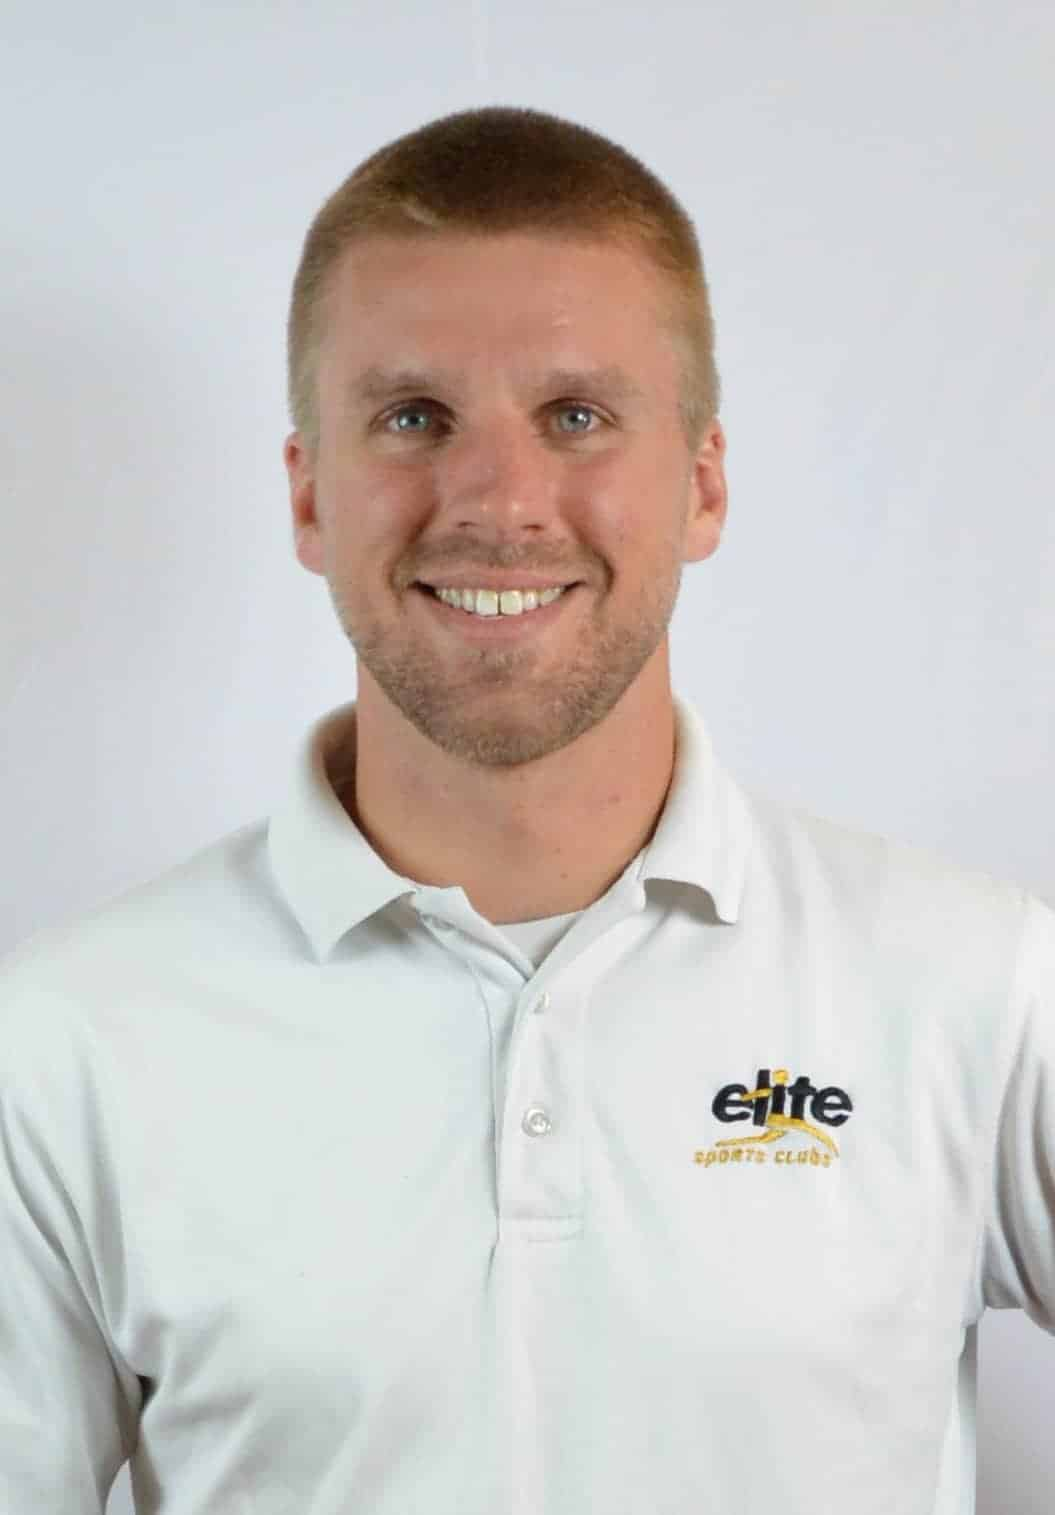 Jordan Meyer Certified Personal Trainer at Elite Sports Club - North Shore